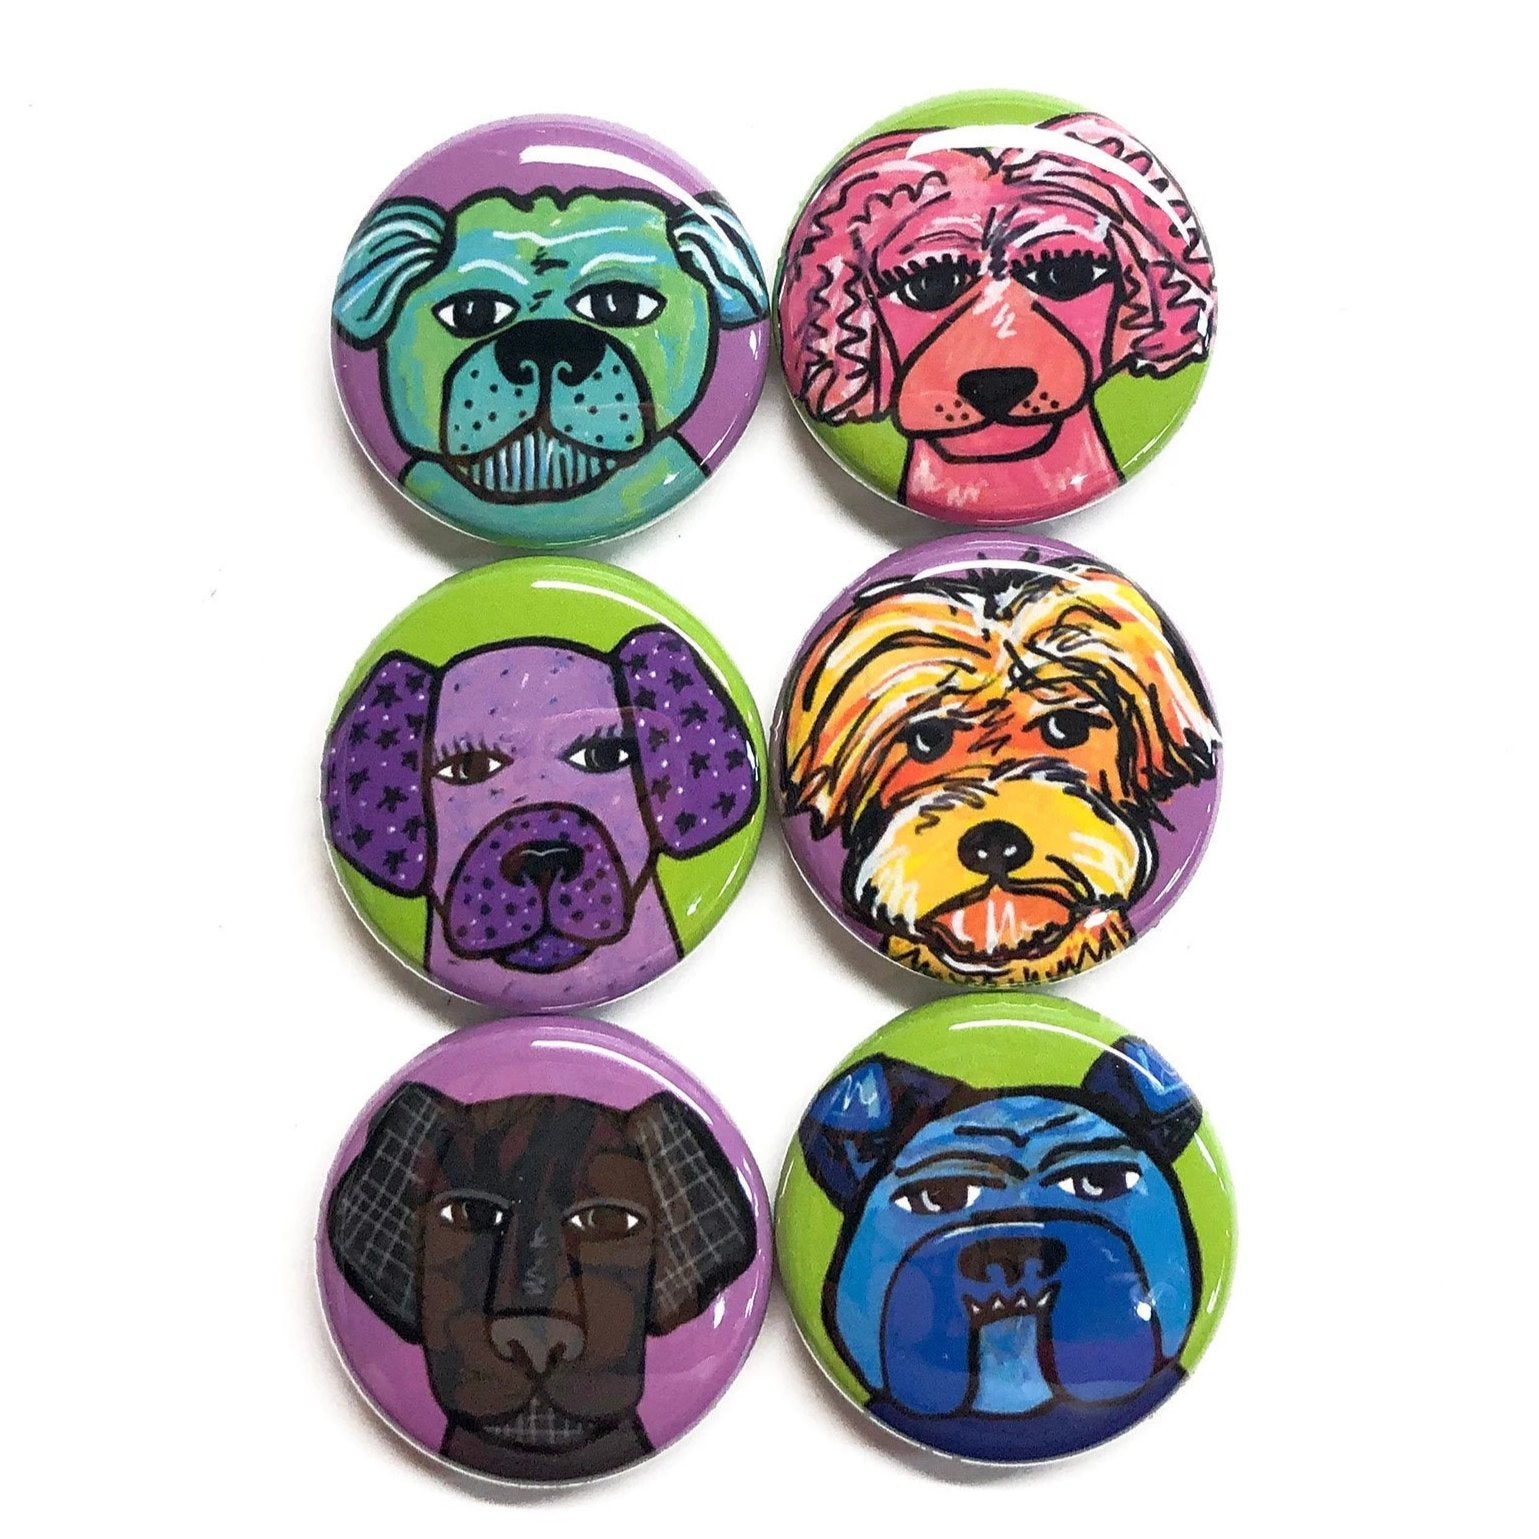 Cute Dog Pins and Magnets - Whimsical Animal Fridge Magnet or Pinback Button Set